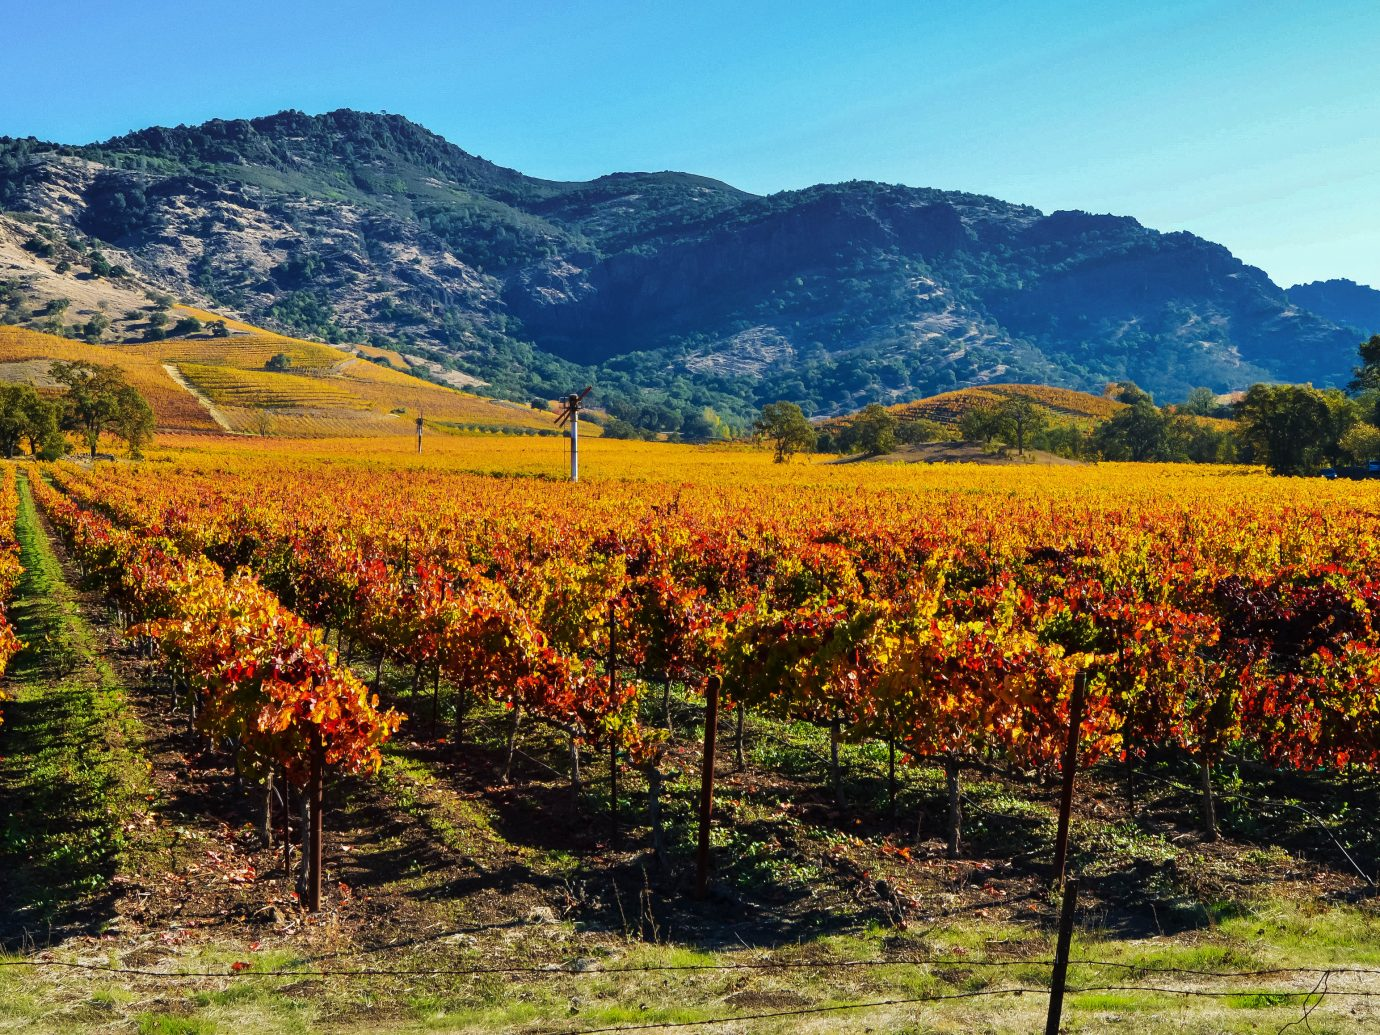 Colorful vineyards in the Napa Valley in autumn